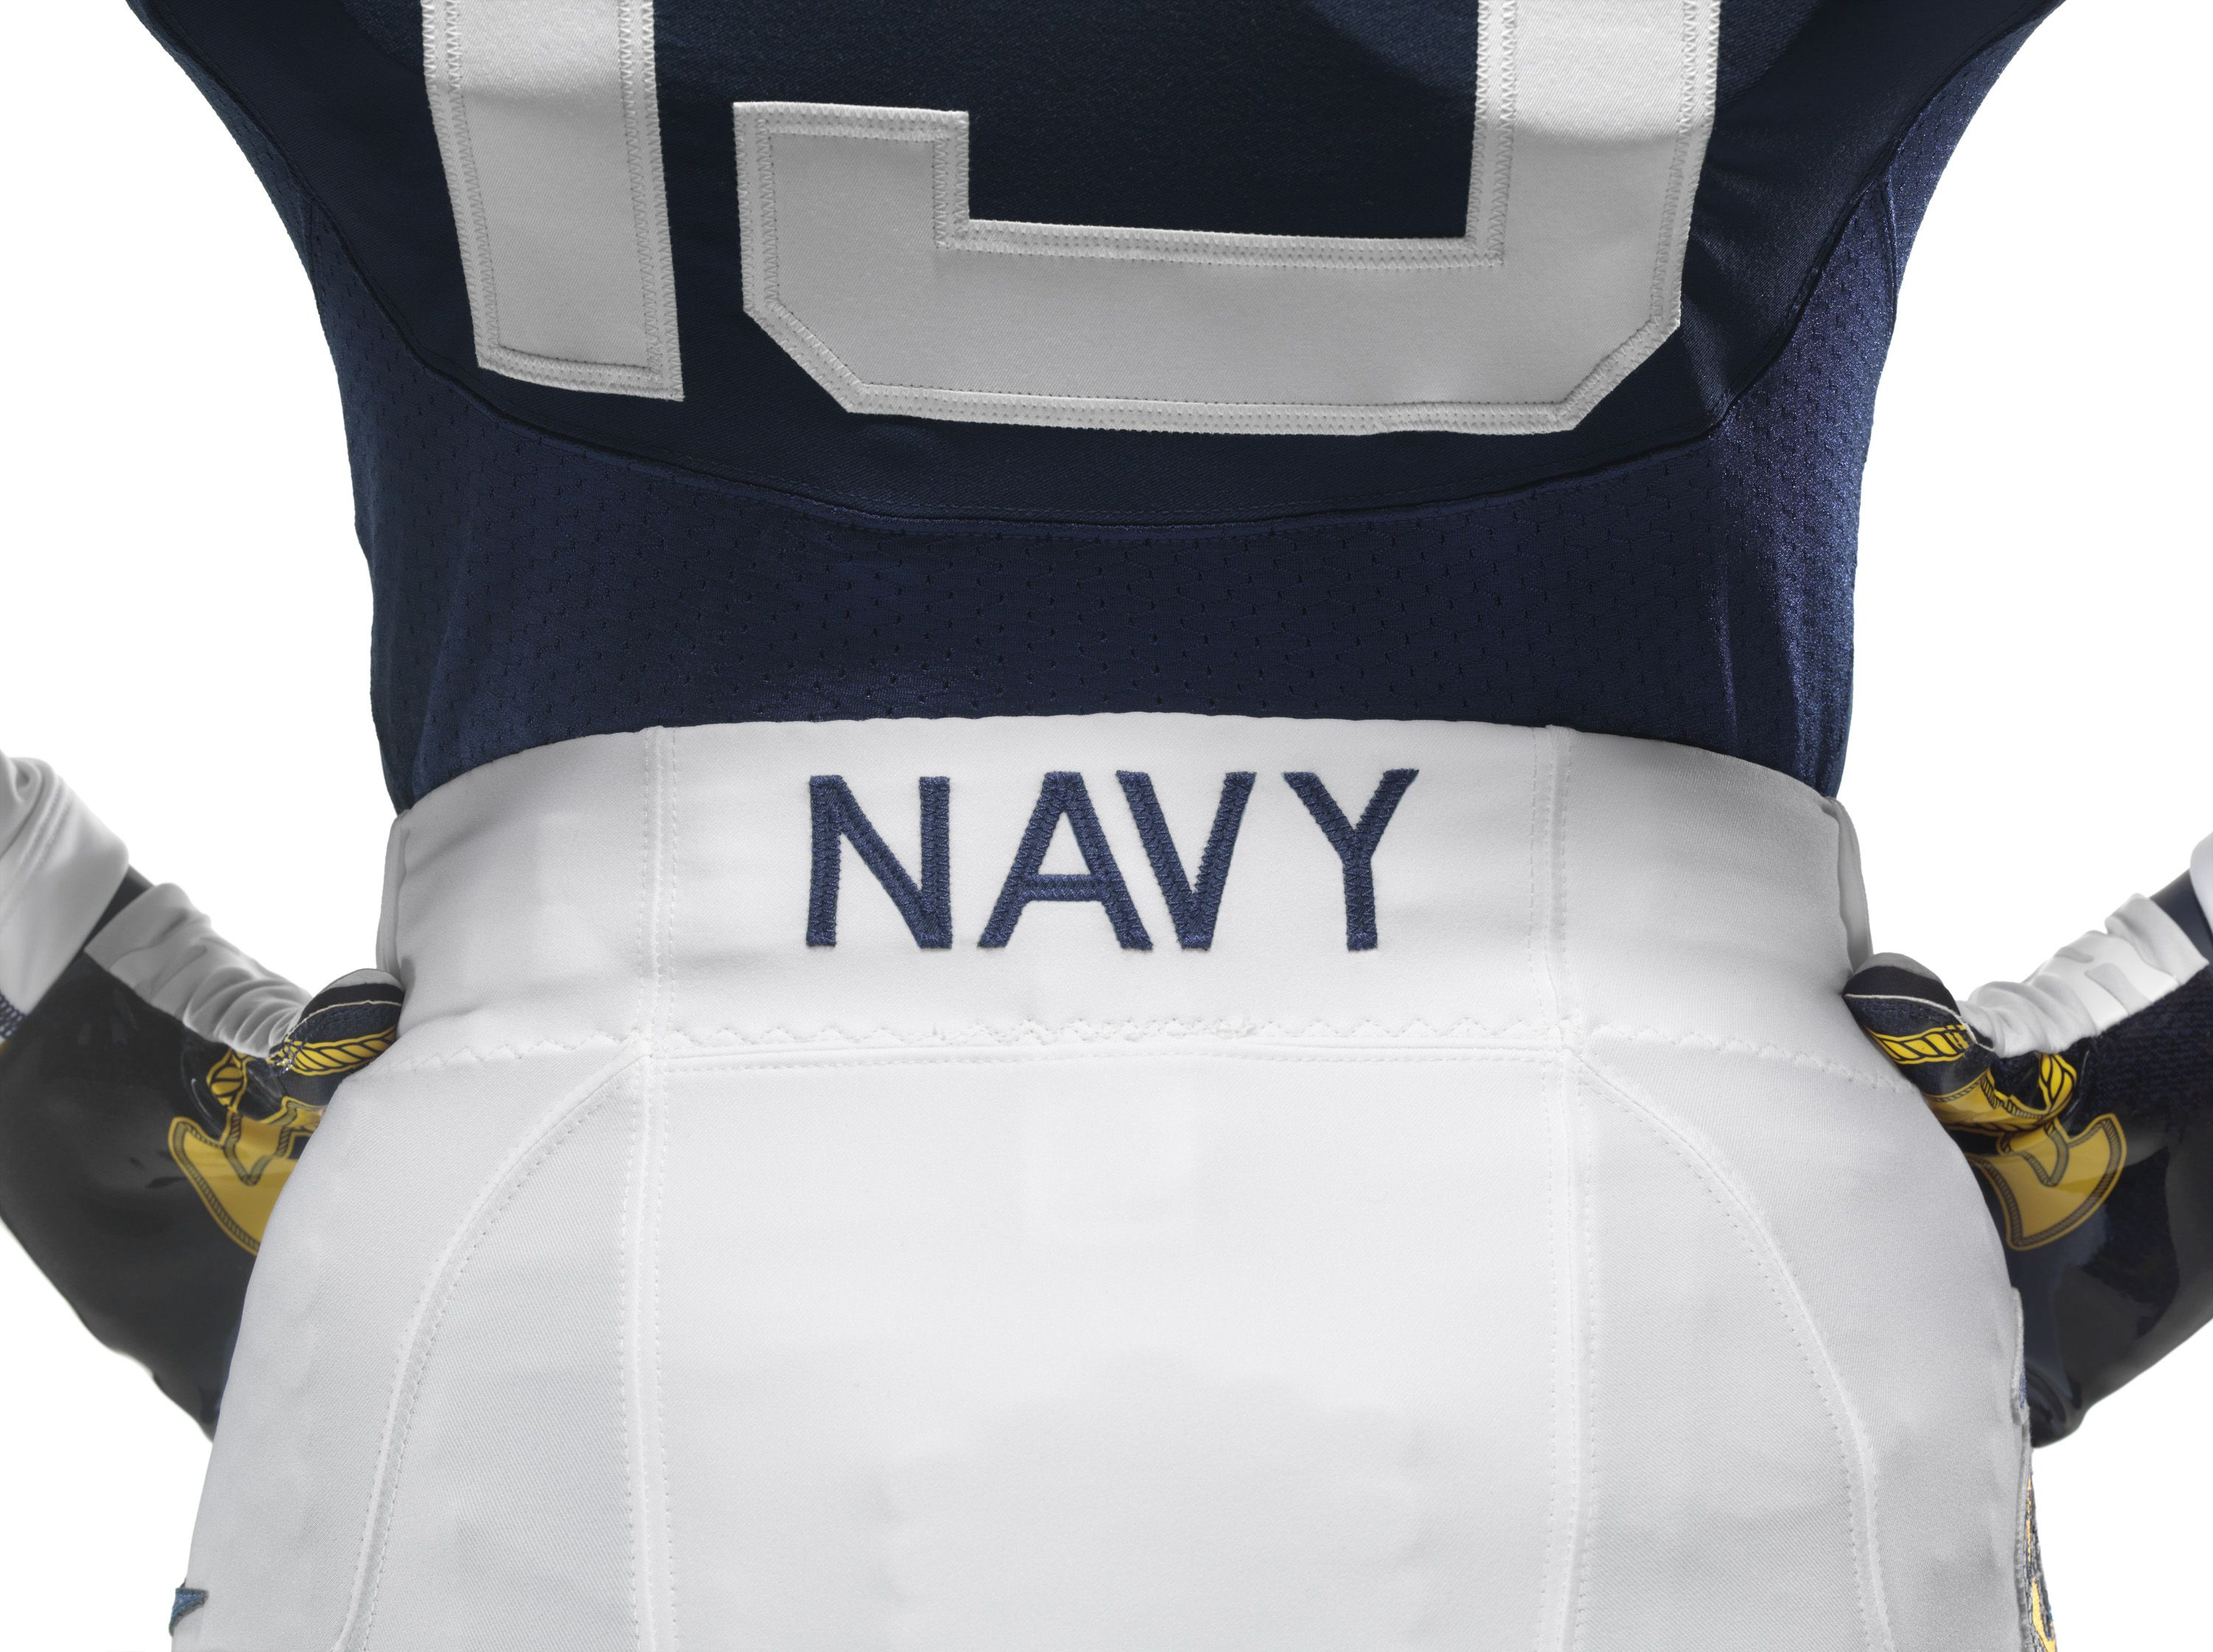 The back of Navy's uniform for the ArmyNavy Game